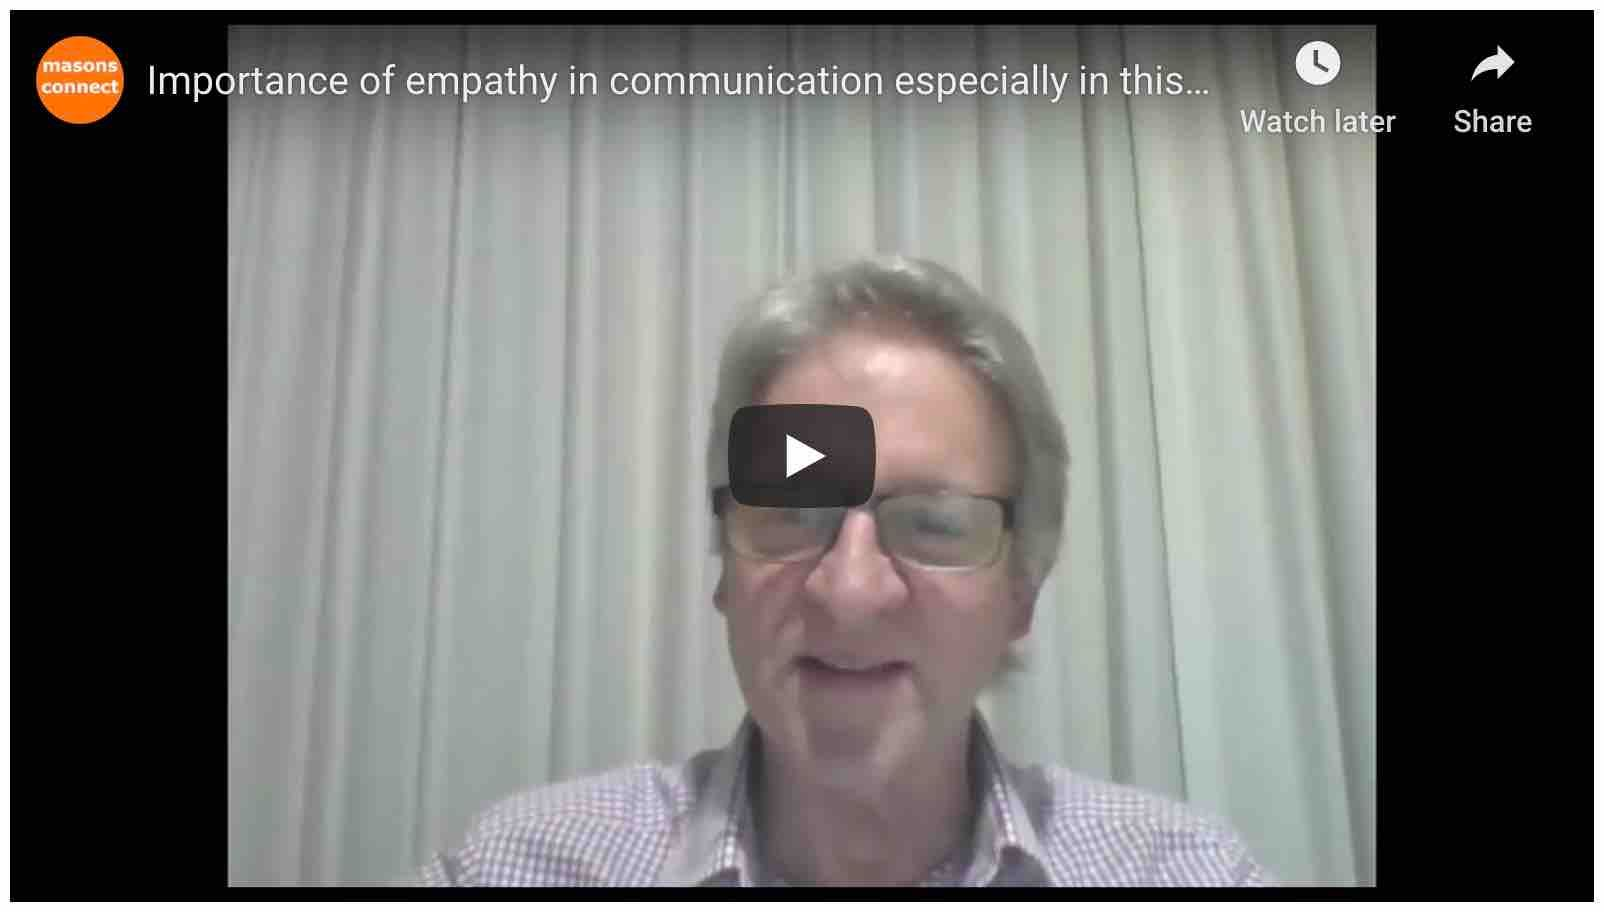 Importance of empathy in communication, especially in this time of digital transitioning